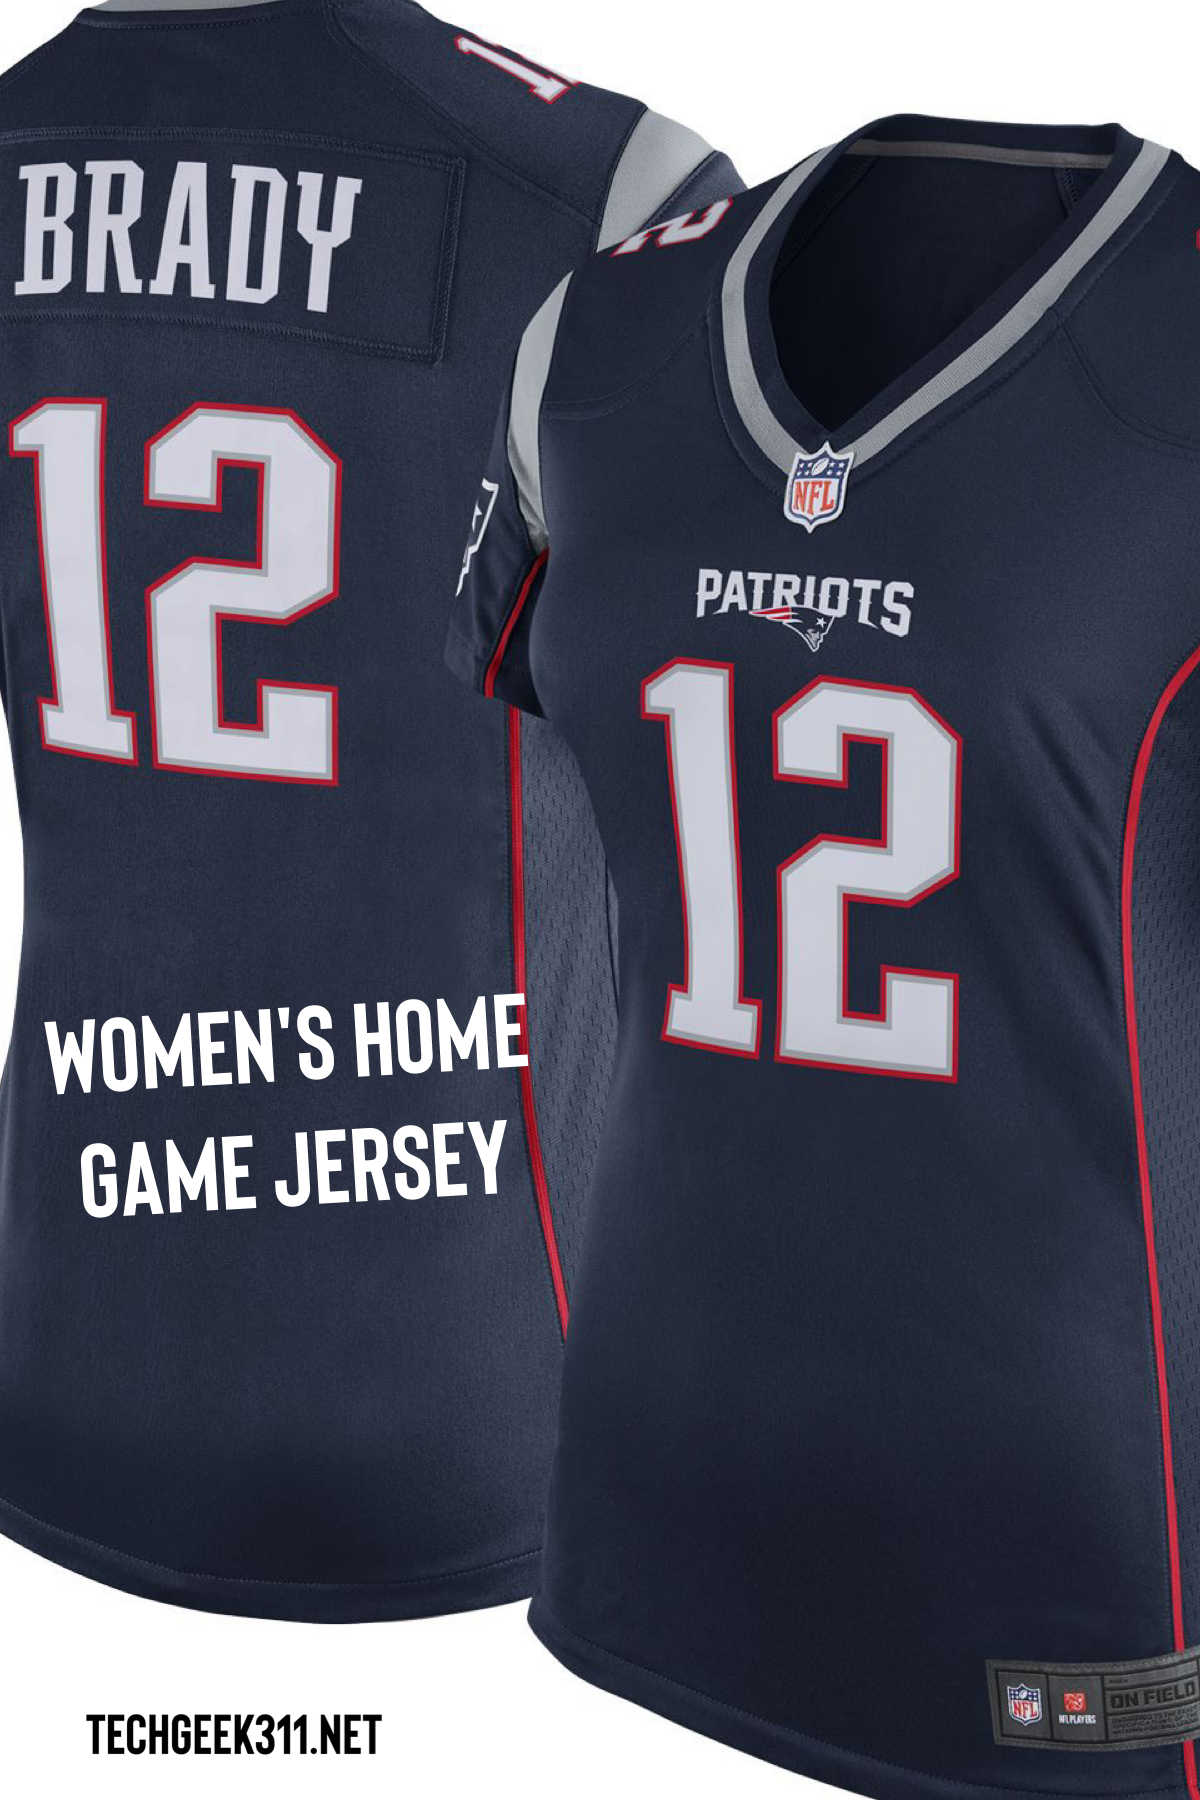 Nike Women S Home Game Jersey New England Patriots Tom Brady 12 Bring Your Fandom To The Forefront This Season In The Stylish Nike N Nike Women Super Bowl Style Guides